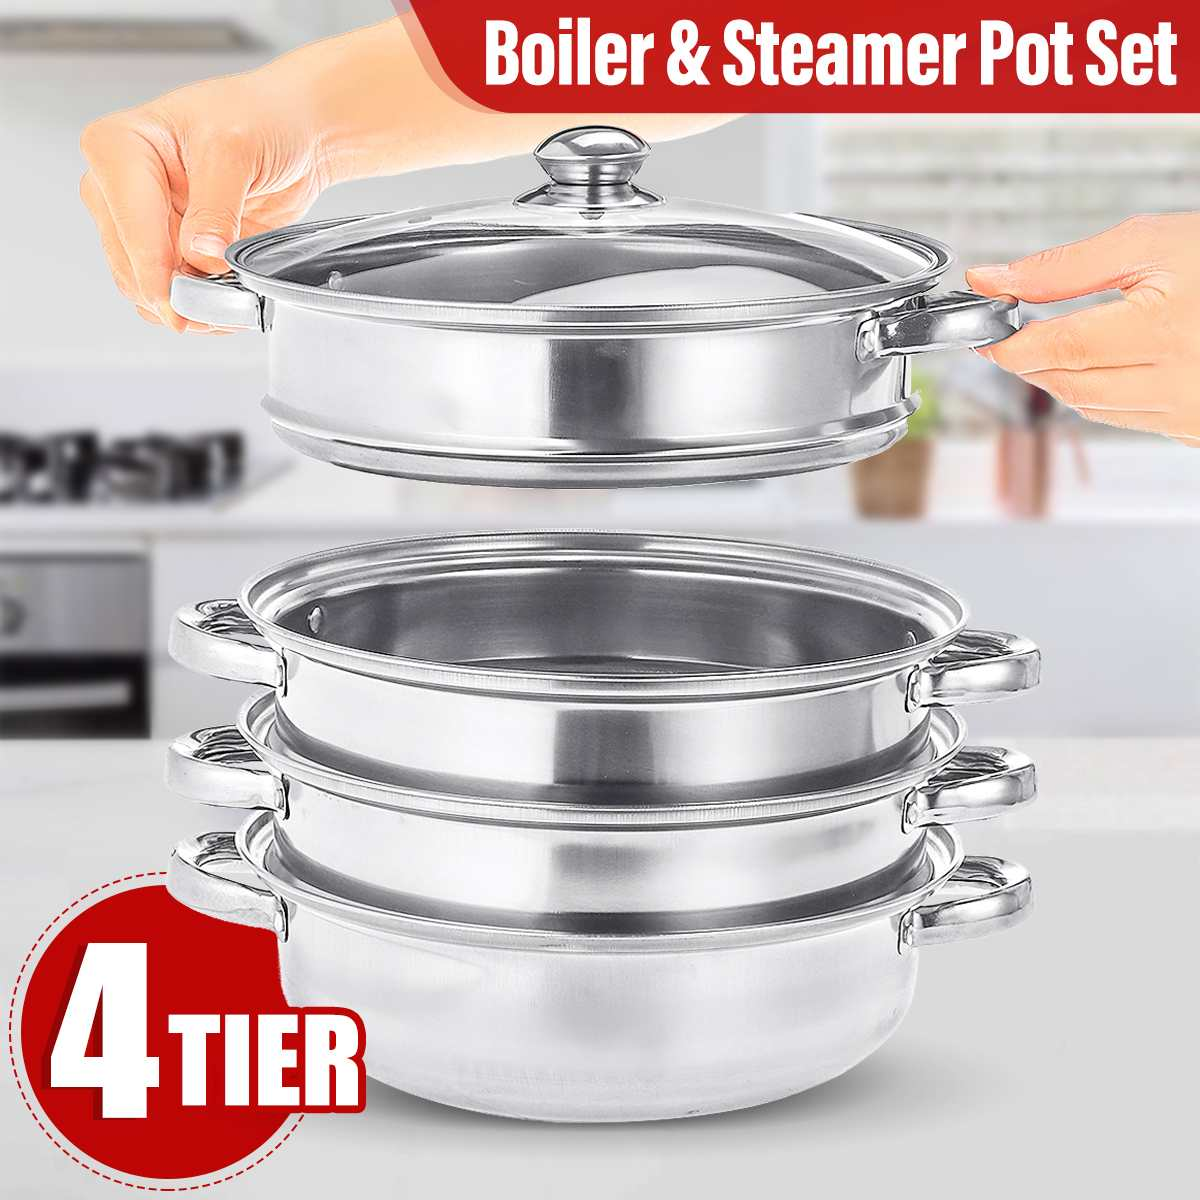 Steamer Pot Cooking-Pots Induction-Cooker Soup Stainless-Steel Thick for 4-Tier Three-Layer